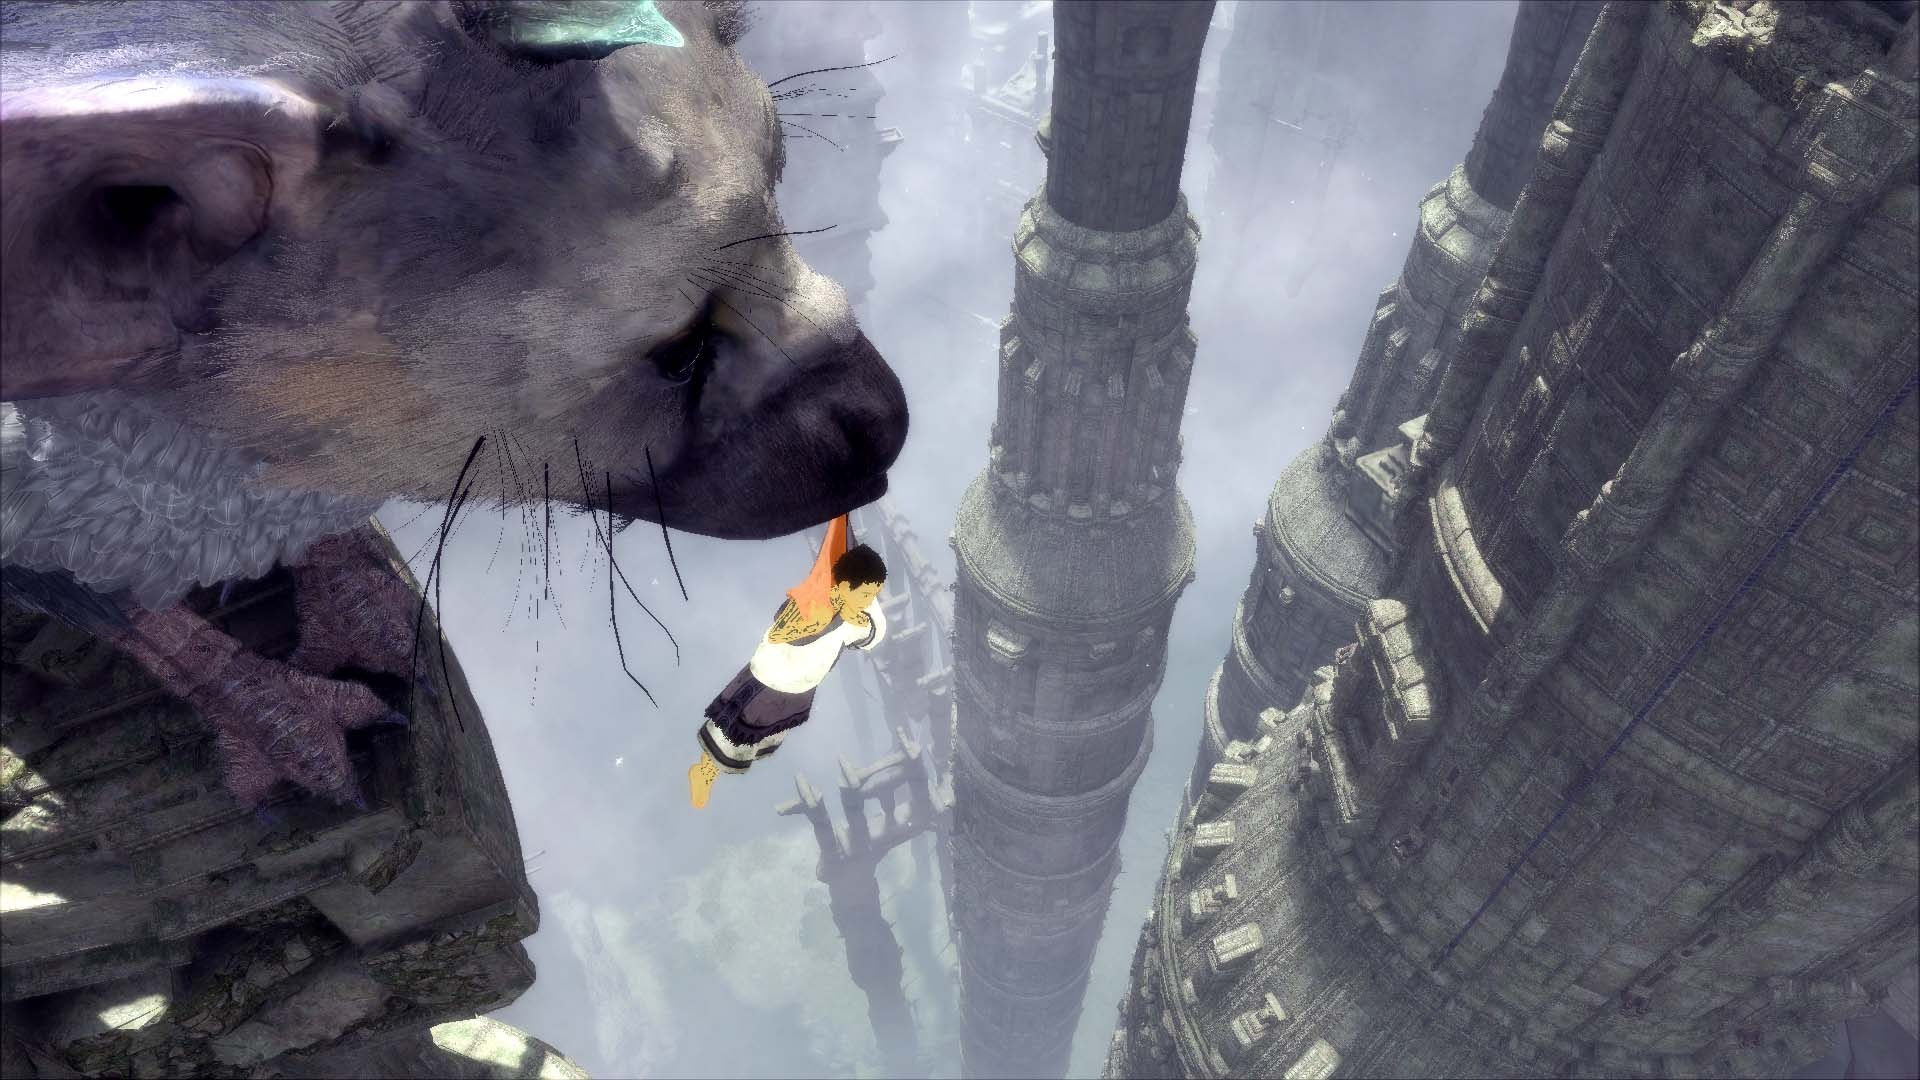 3155693-thelastguardian_screenshot_6